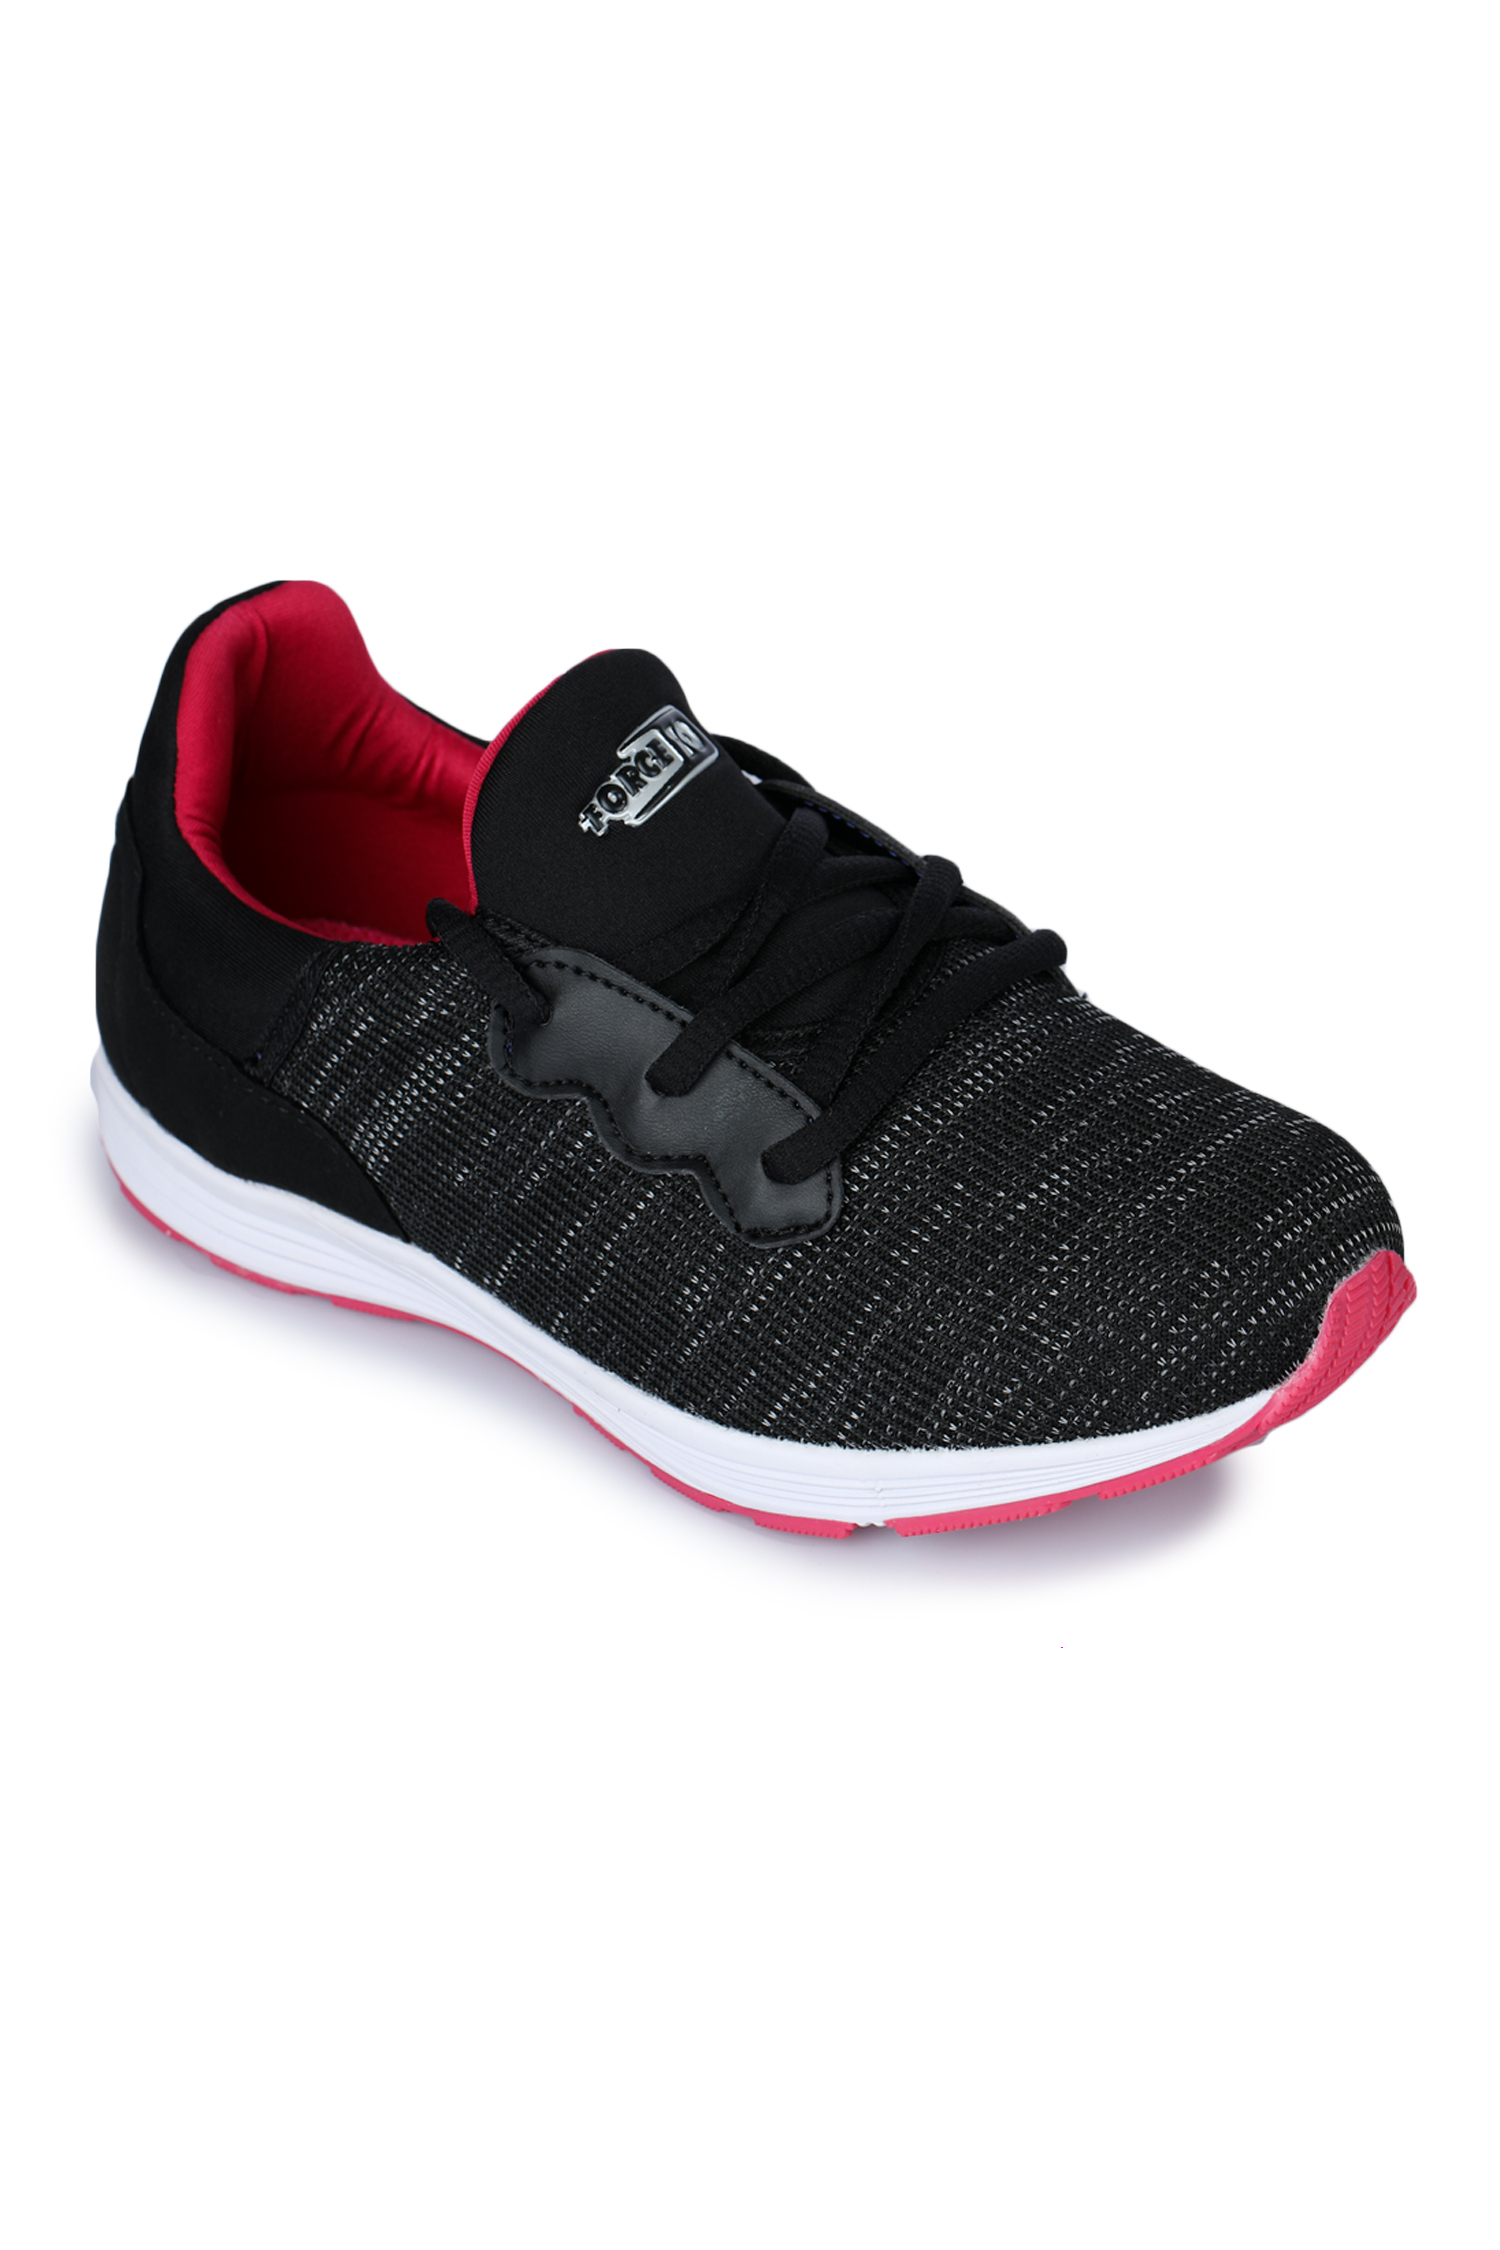 Liberty | Liberty Force 10 Black Sports Running Shoes MARTIE-2N_Black_3 For - Girls